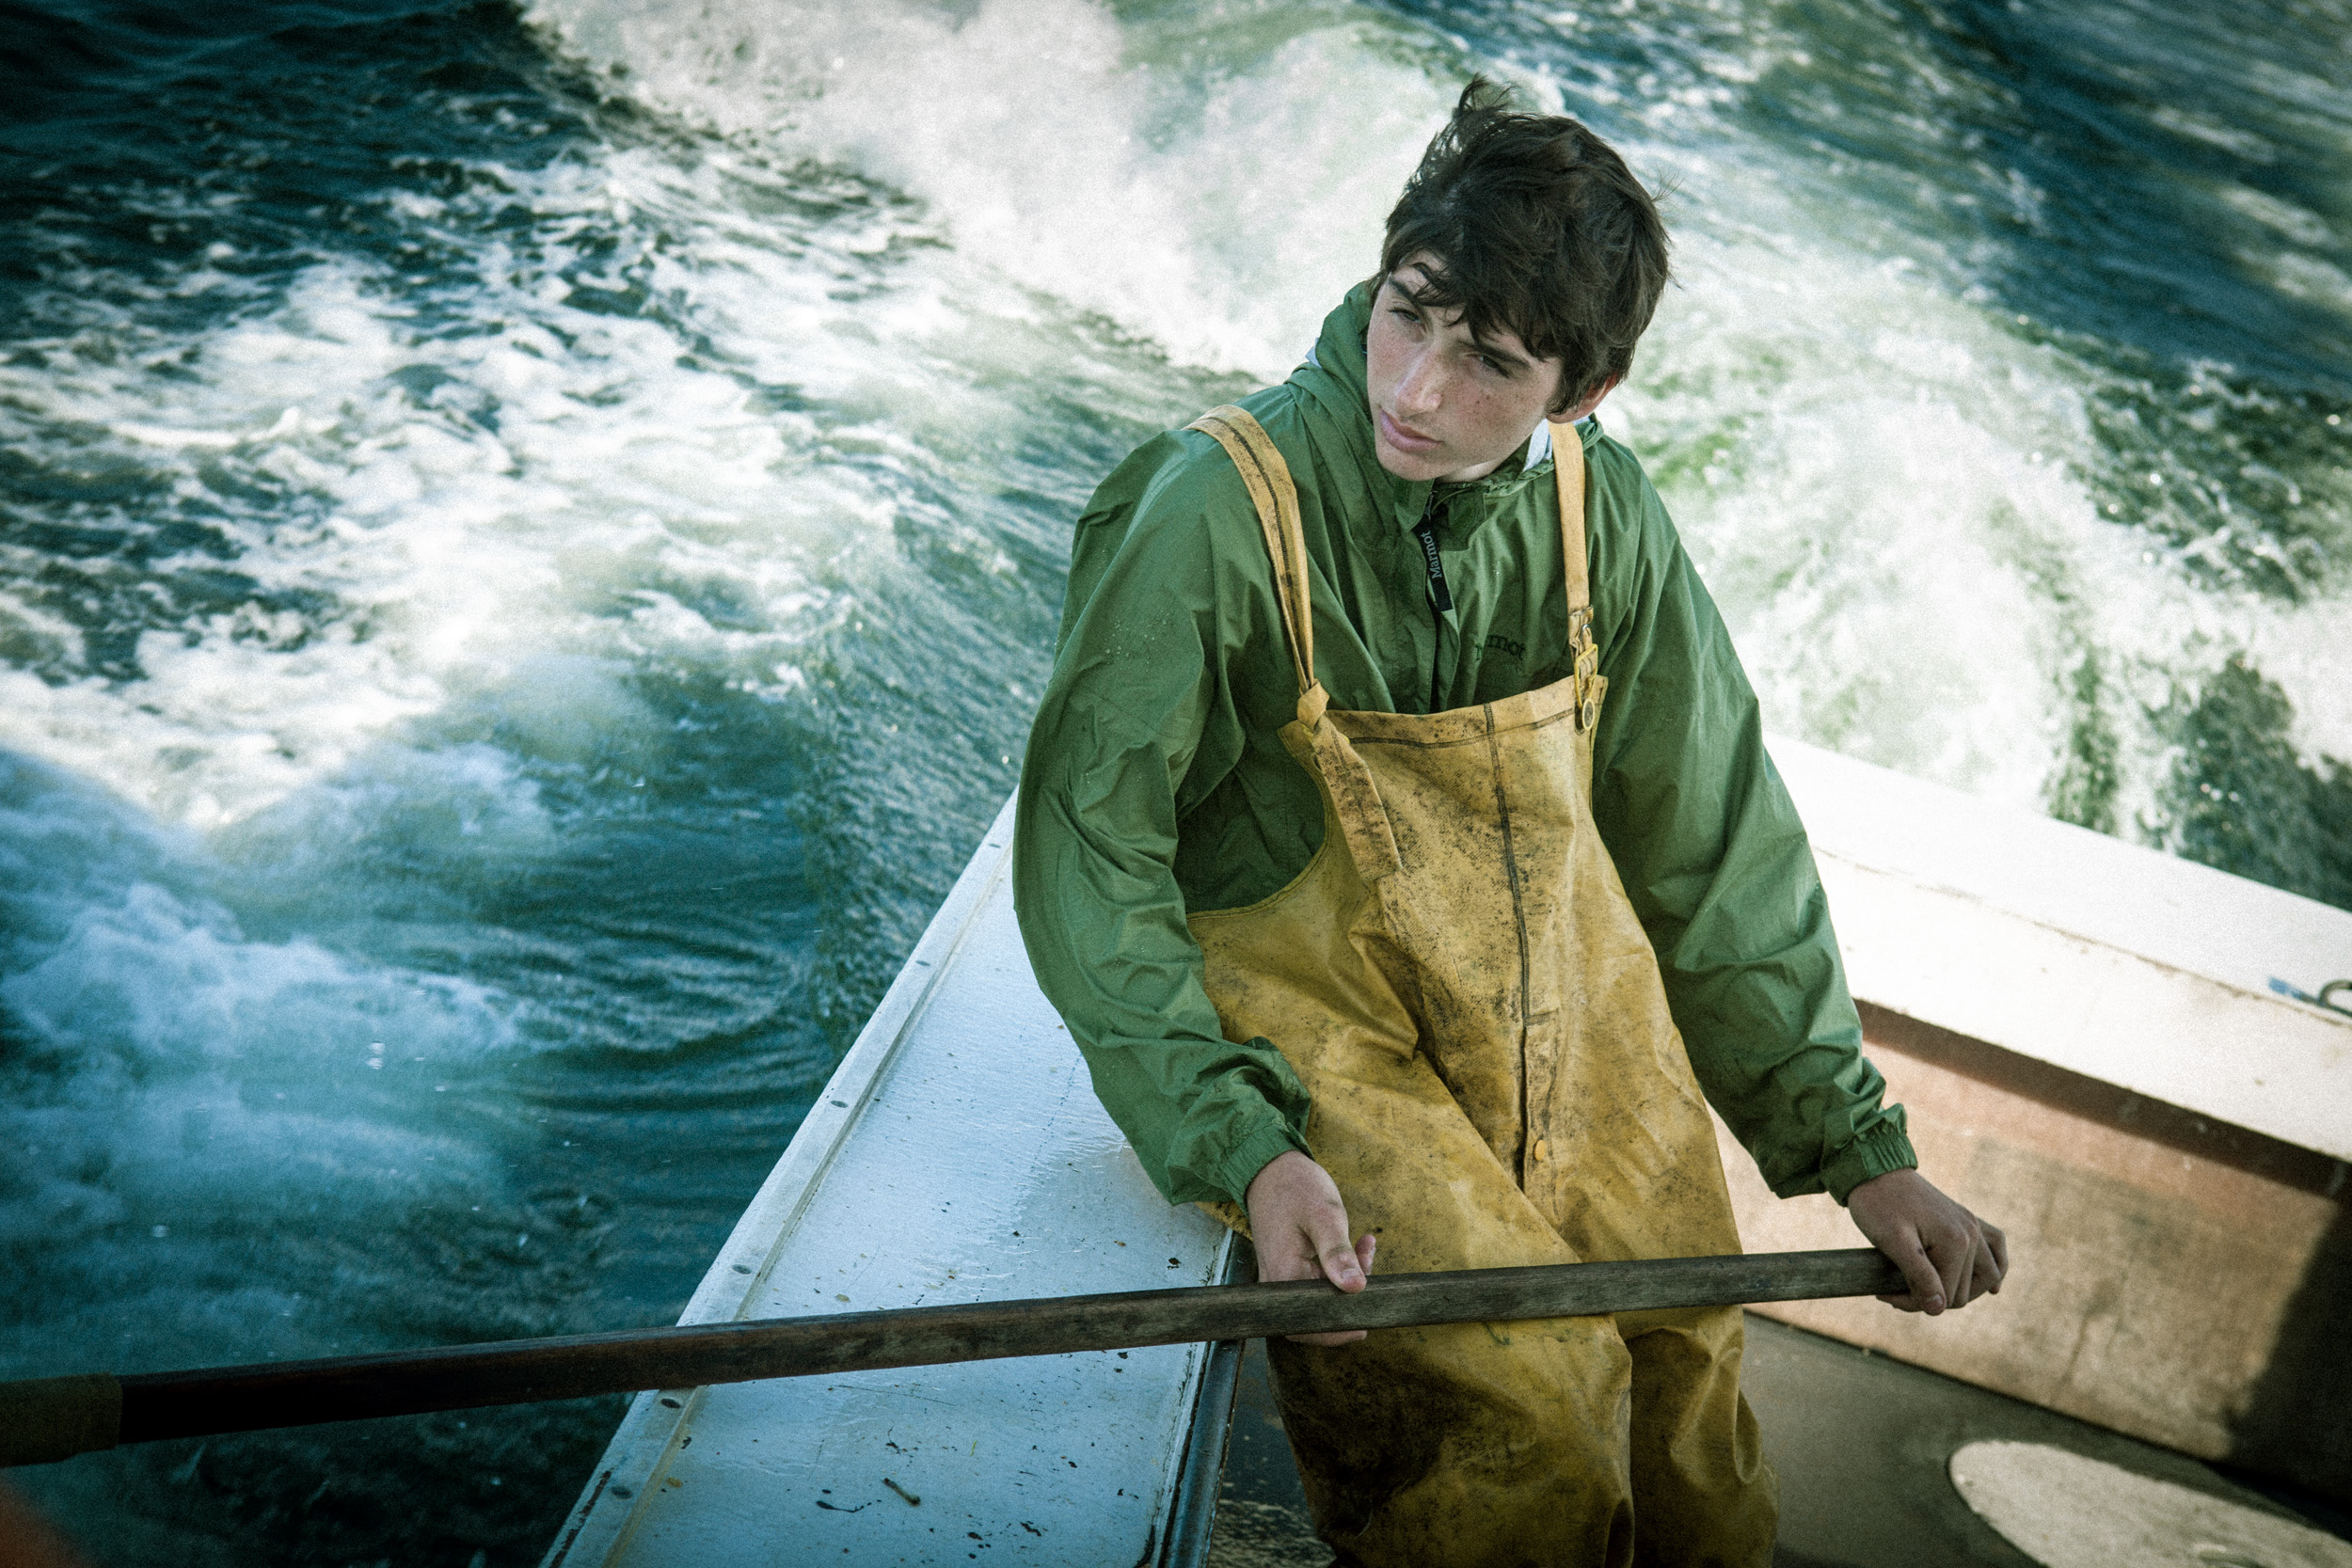 Boy on lobster boat, shot by Steven P. Widoff